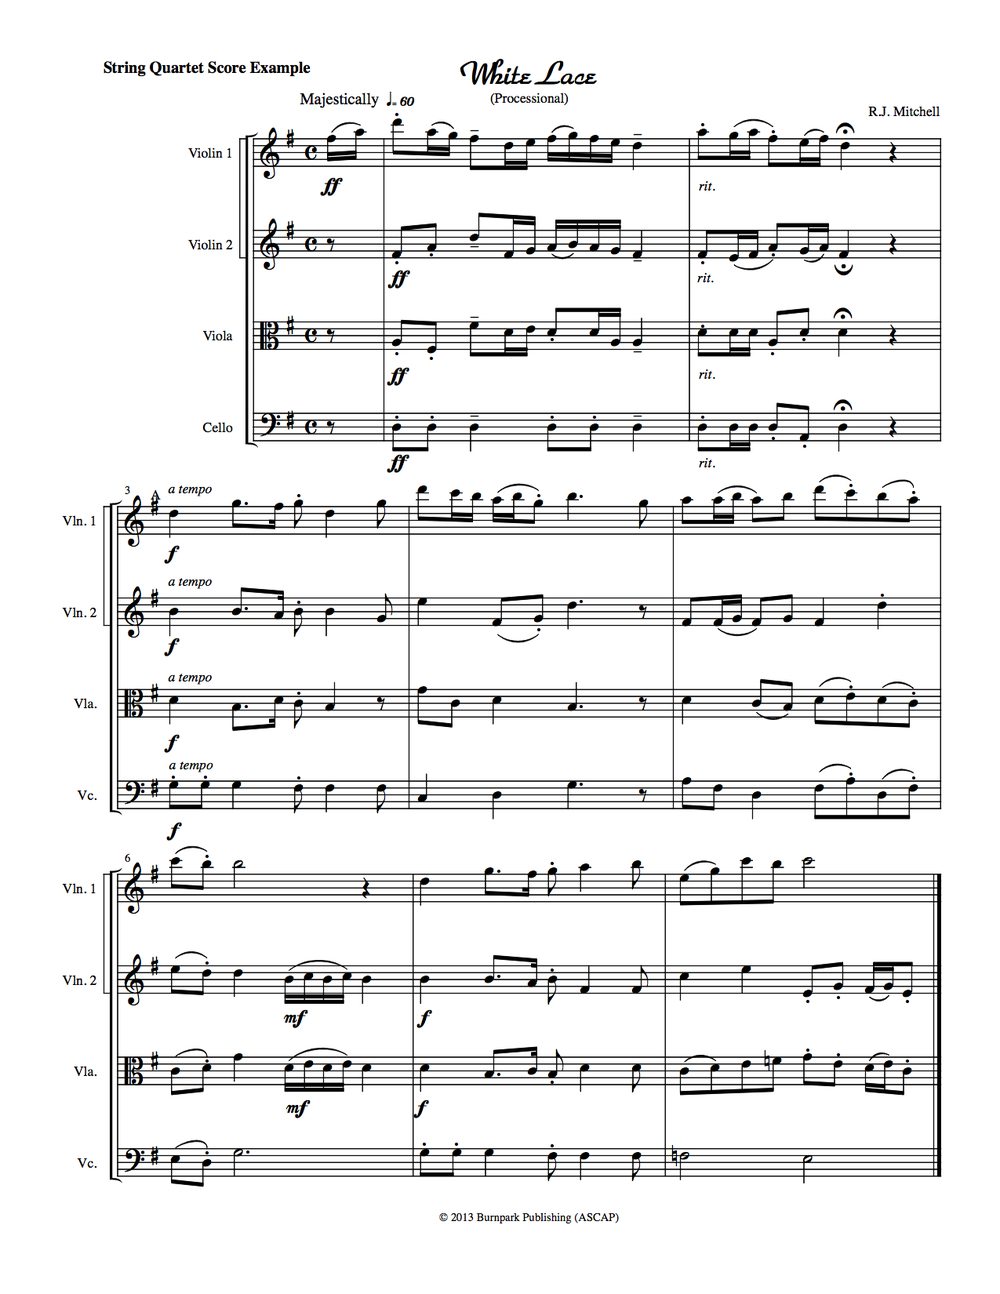 String Quartet Score Sheet Music Example